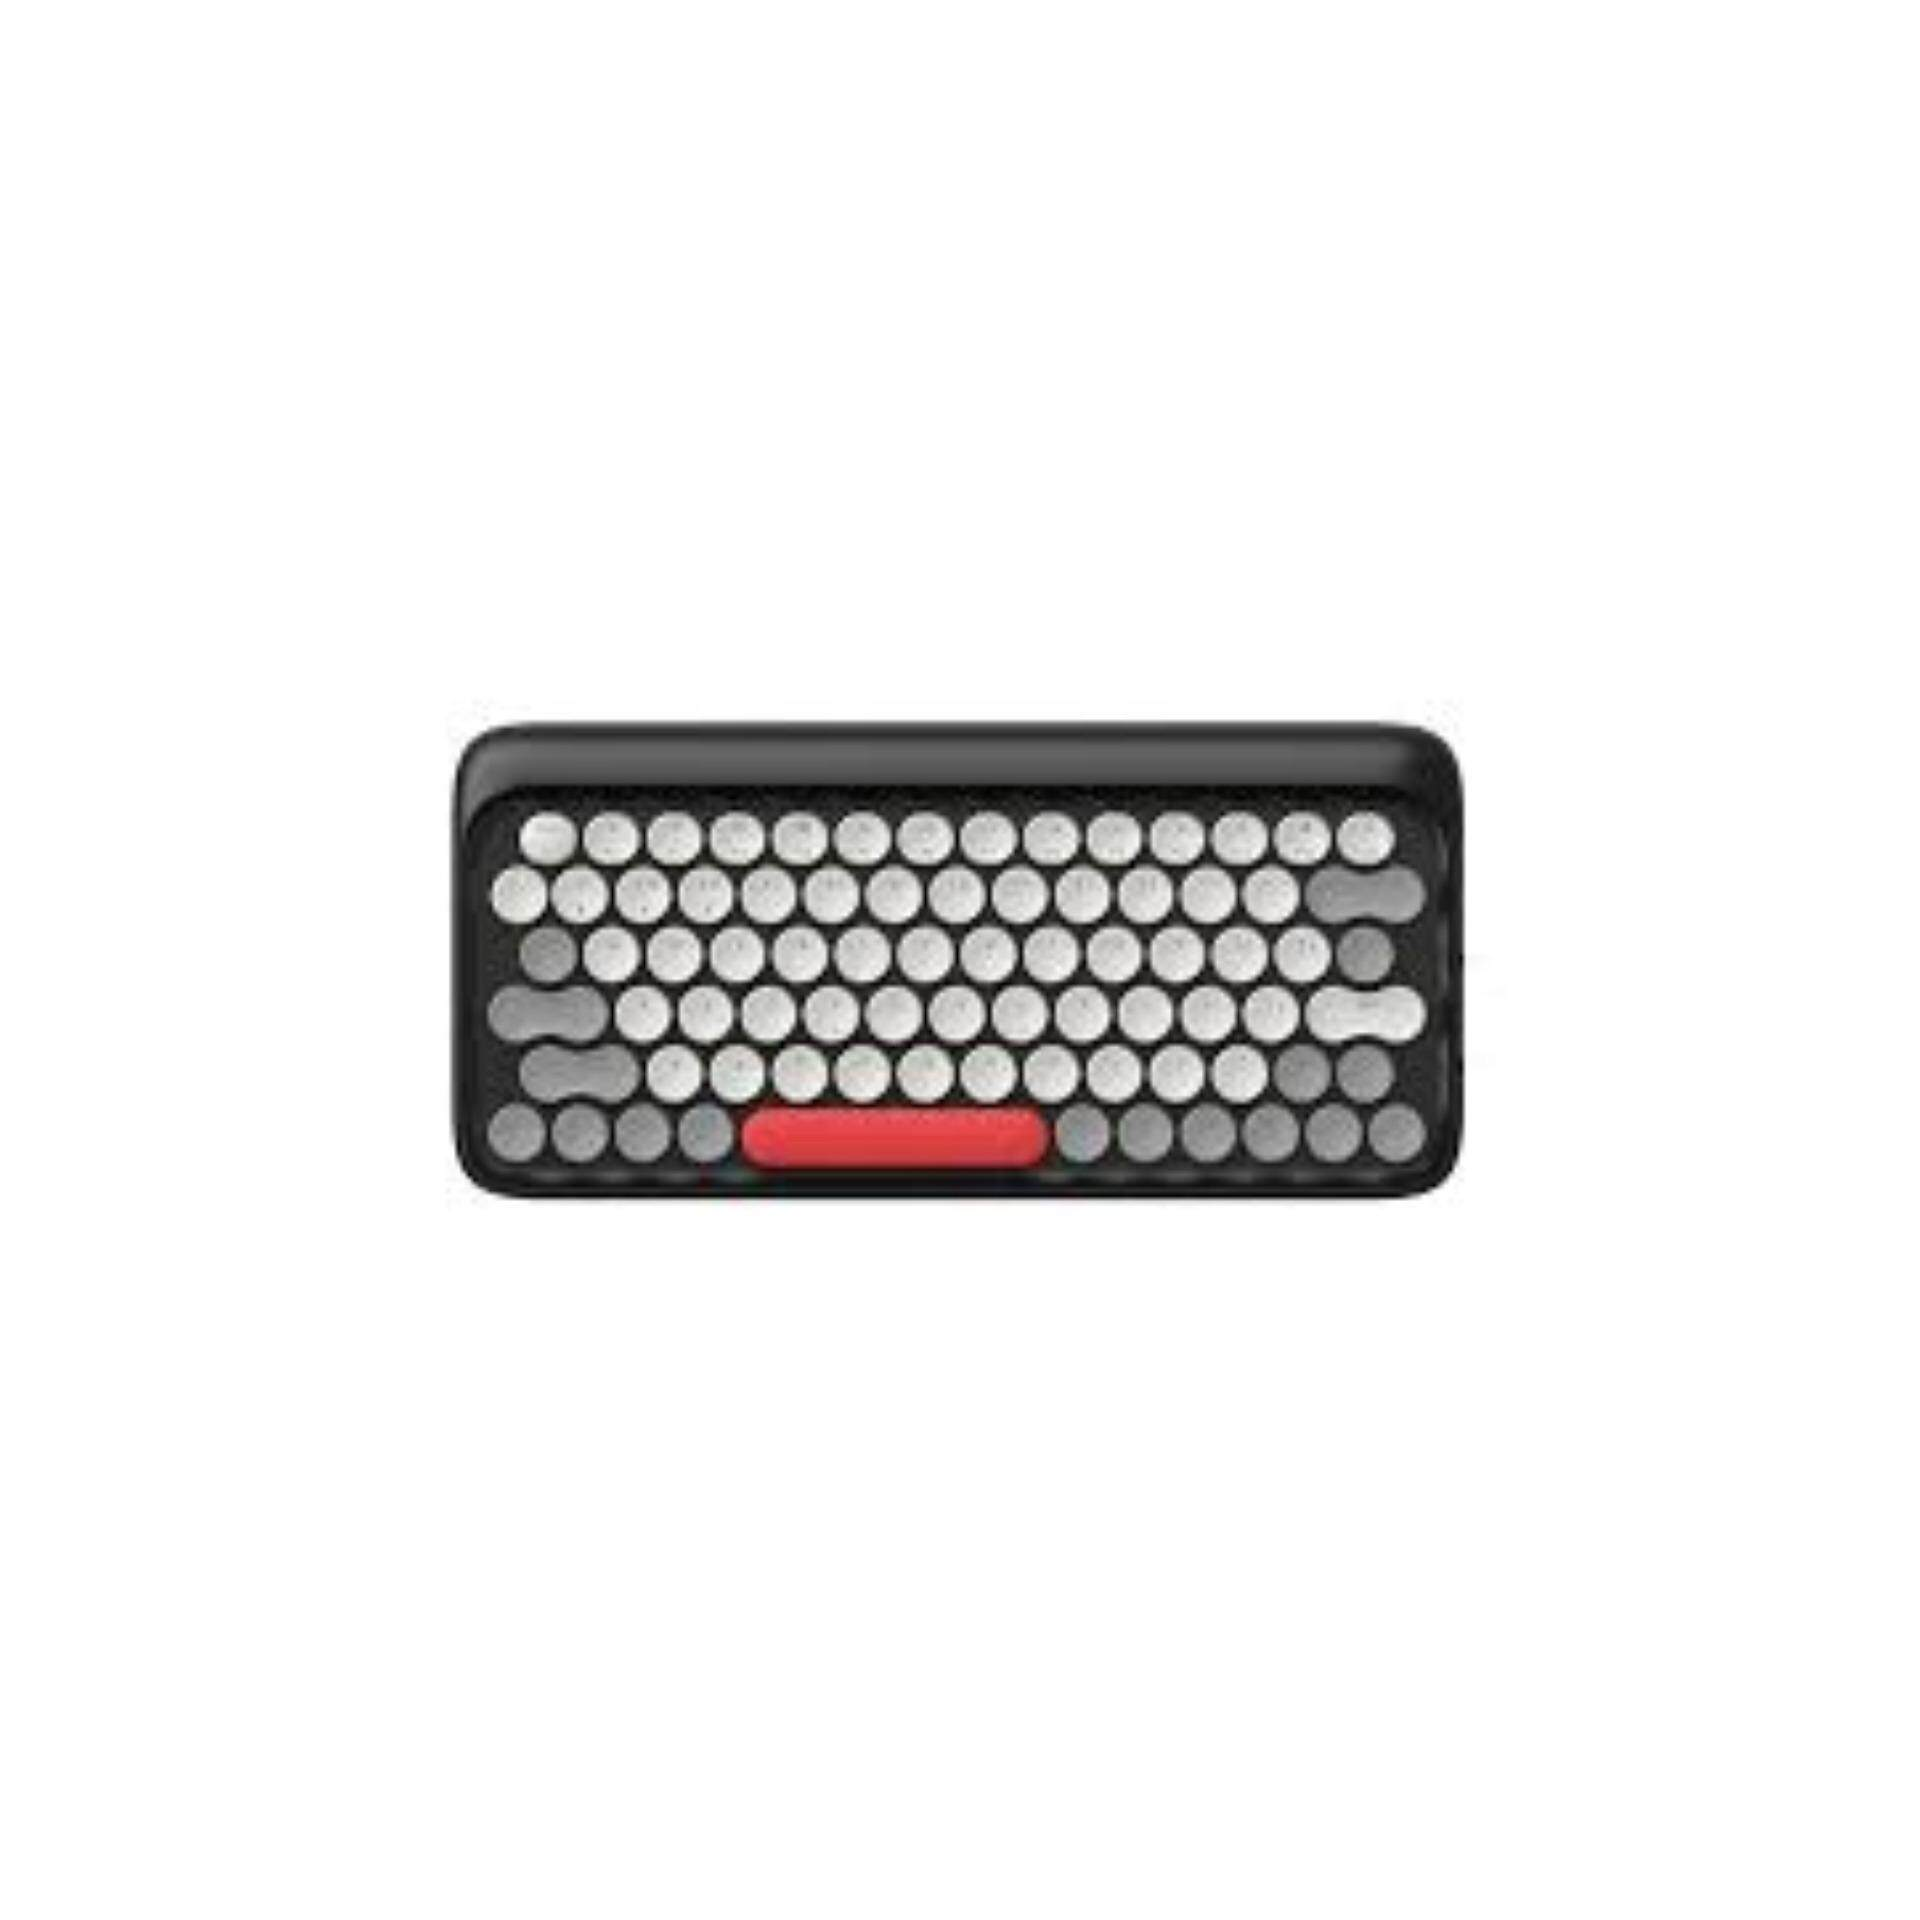 ยี่ห้อไหนดี  พิษณุโลก Lofree Four Seasons Mechanical Keyboard Hibernal Black (Winter)